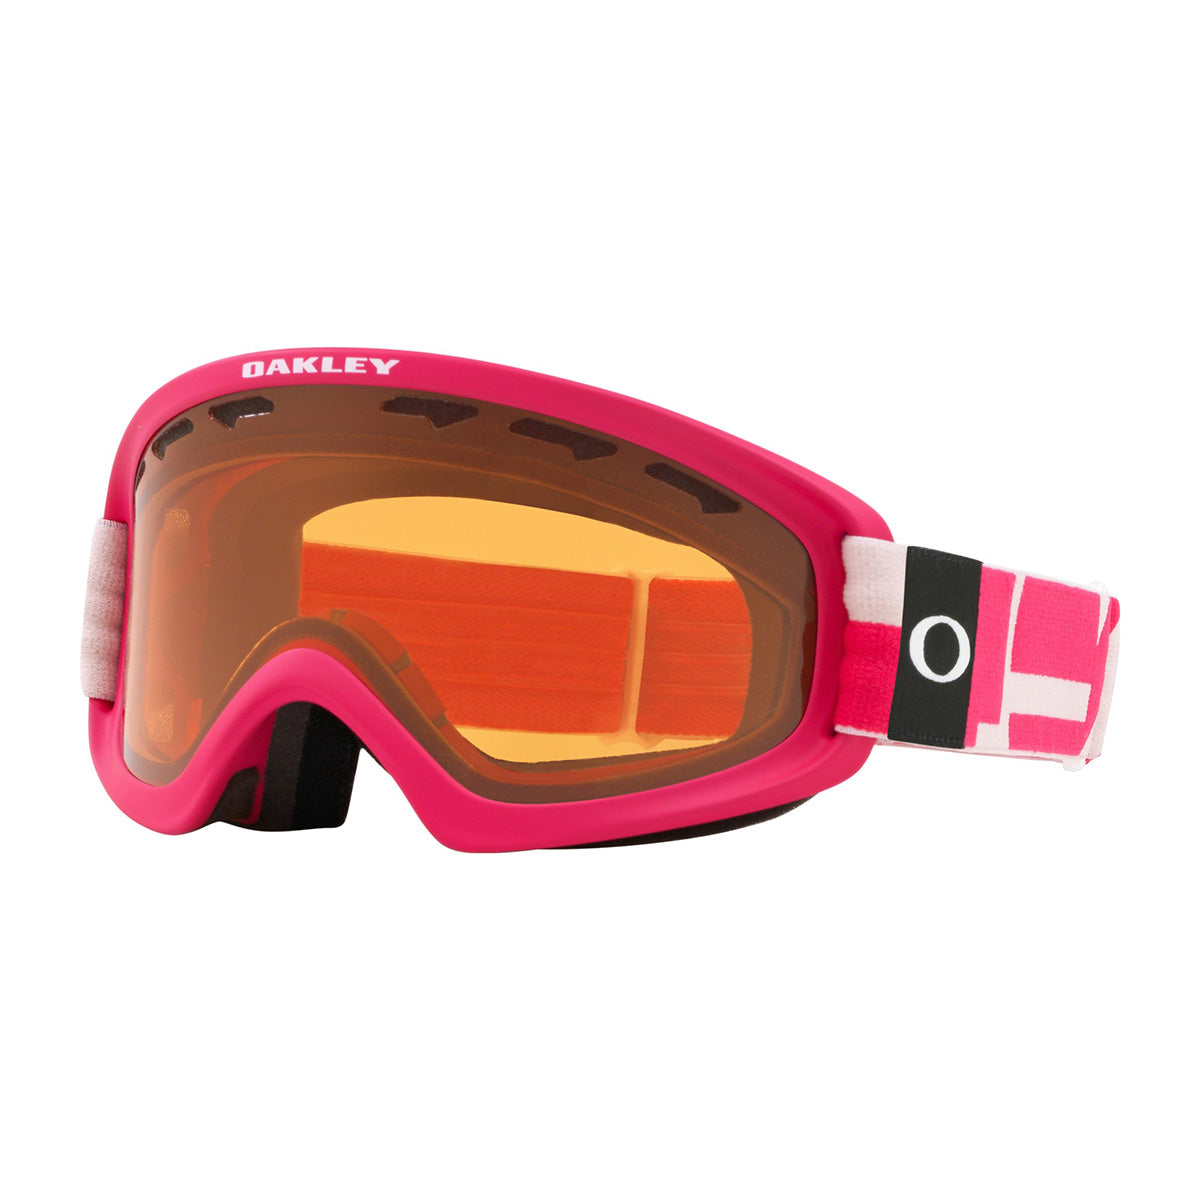 OAKLEY W20 OF 2.0 PRO XS ICNOGRAPHY PINK W/PERS & DK GRY